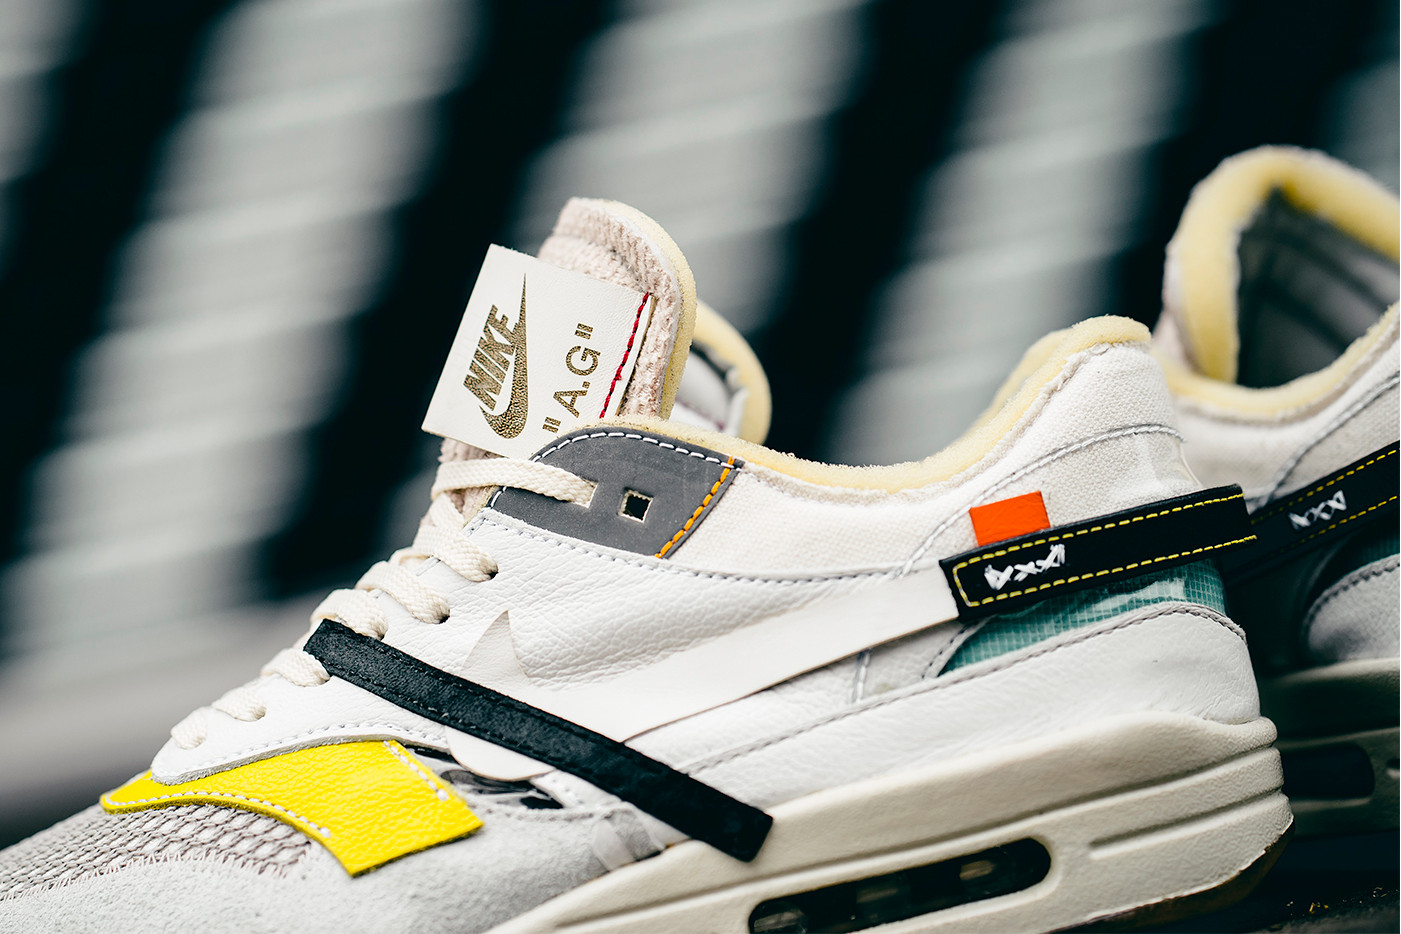 Off-White™-Inspired Air Max 1